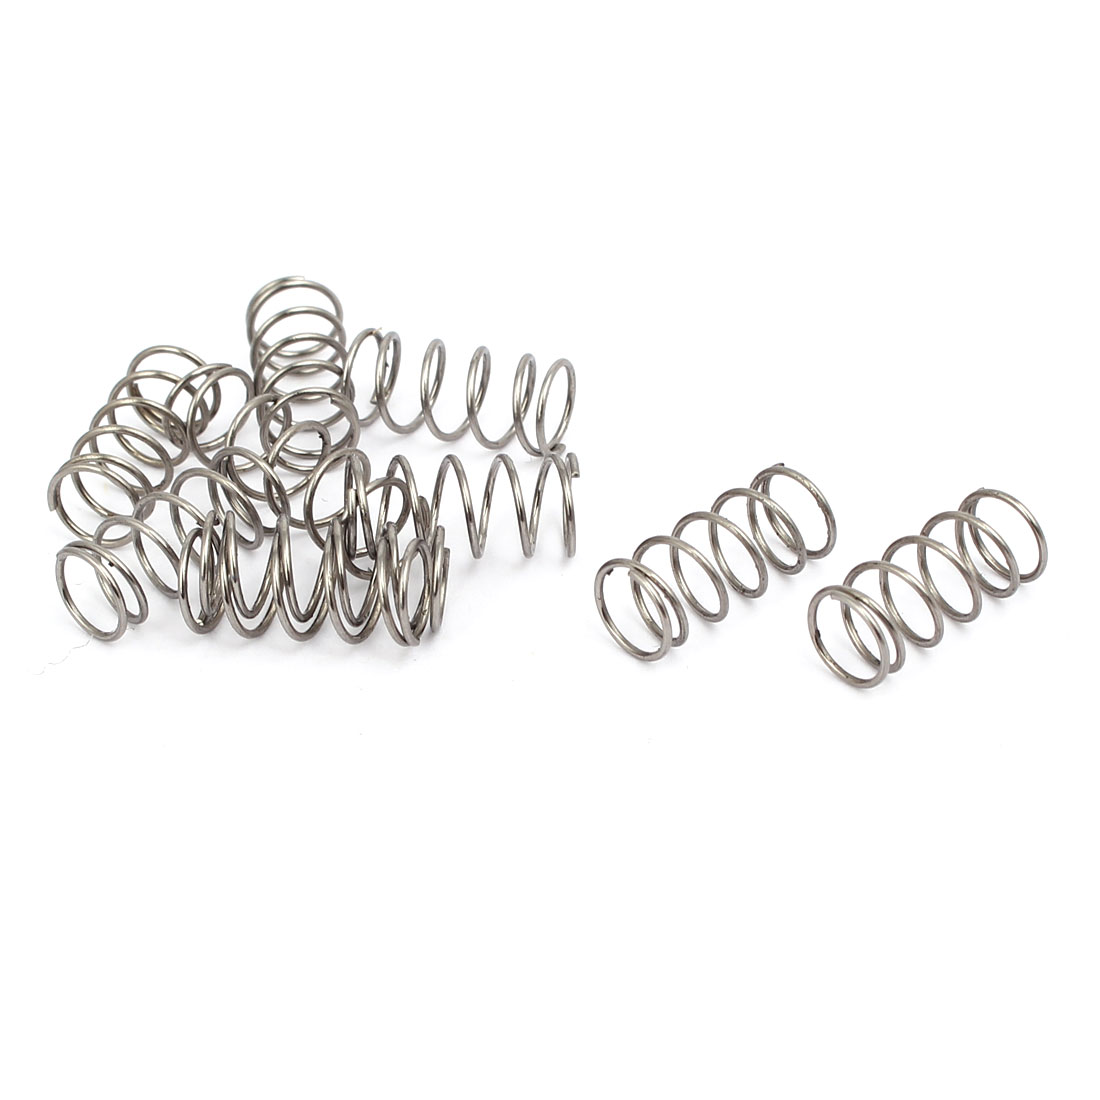 0.6mmx7mmx15mm 304 Stainless Steel Compression Springs Silver Tone 10pcs - image 3 of 3